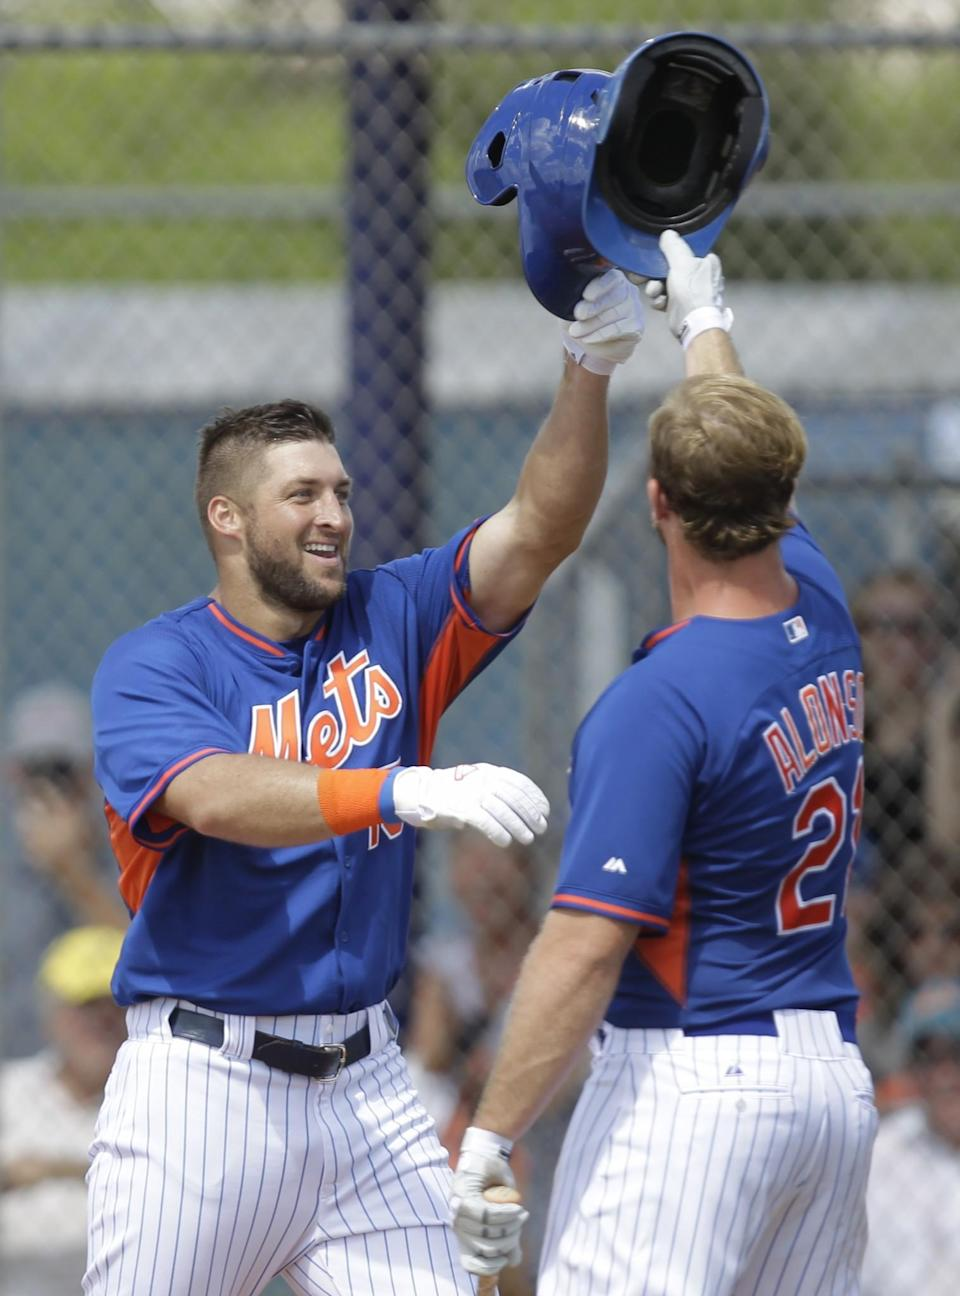 <p>Tim Tebow is greeted by Peter Alonso after hitting a solo home run in his first at bat during the first inning of his first instructional league baseball game for the New York Mets against the St. Louis Cardinals instructional club Wednesday, Sept. 28, 2016, in Port St. Lucie, Fla. (AP Photo/Luis M. Alvarez) </p>